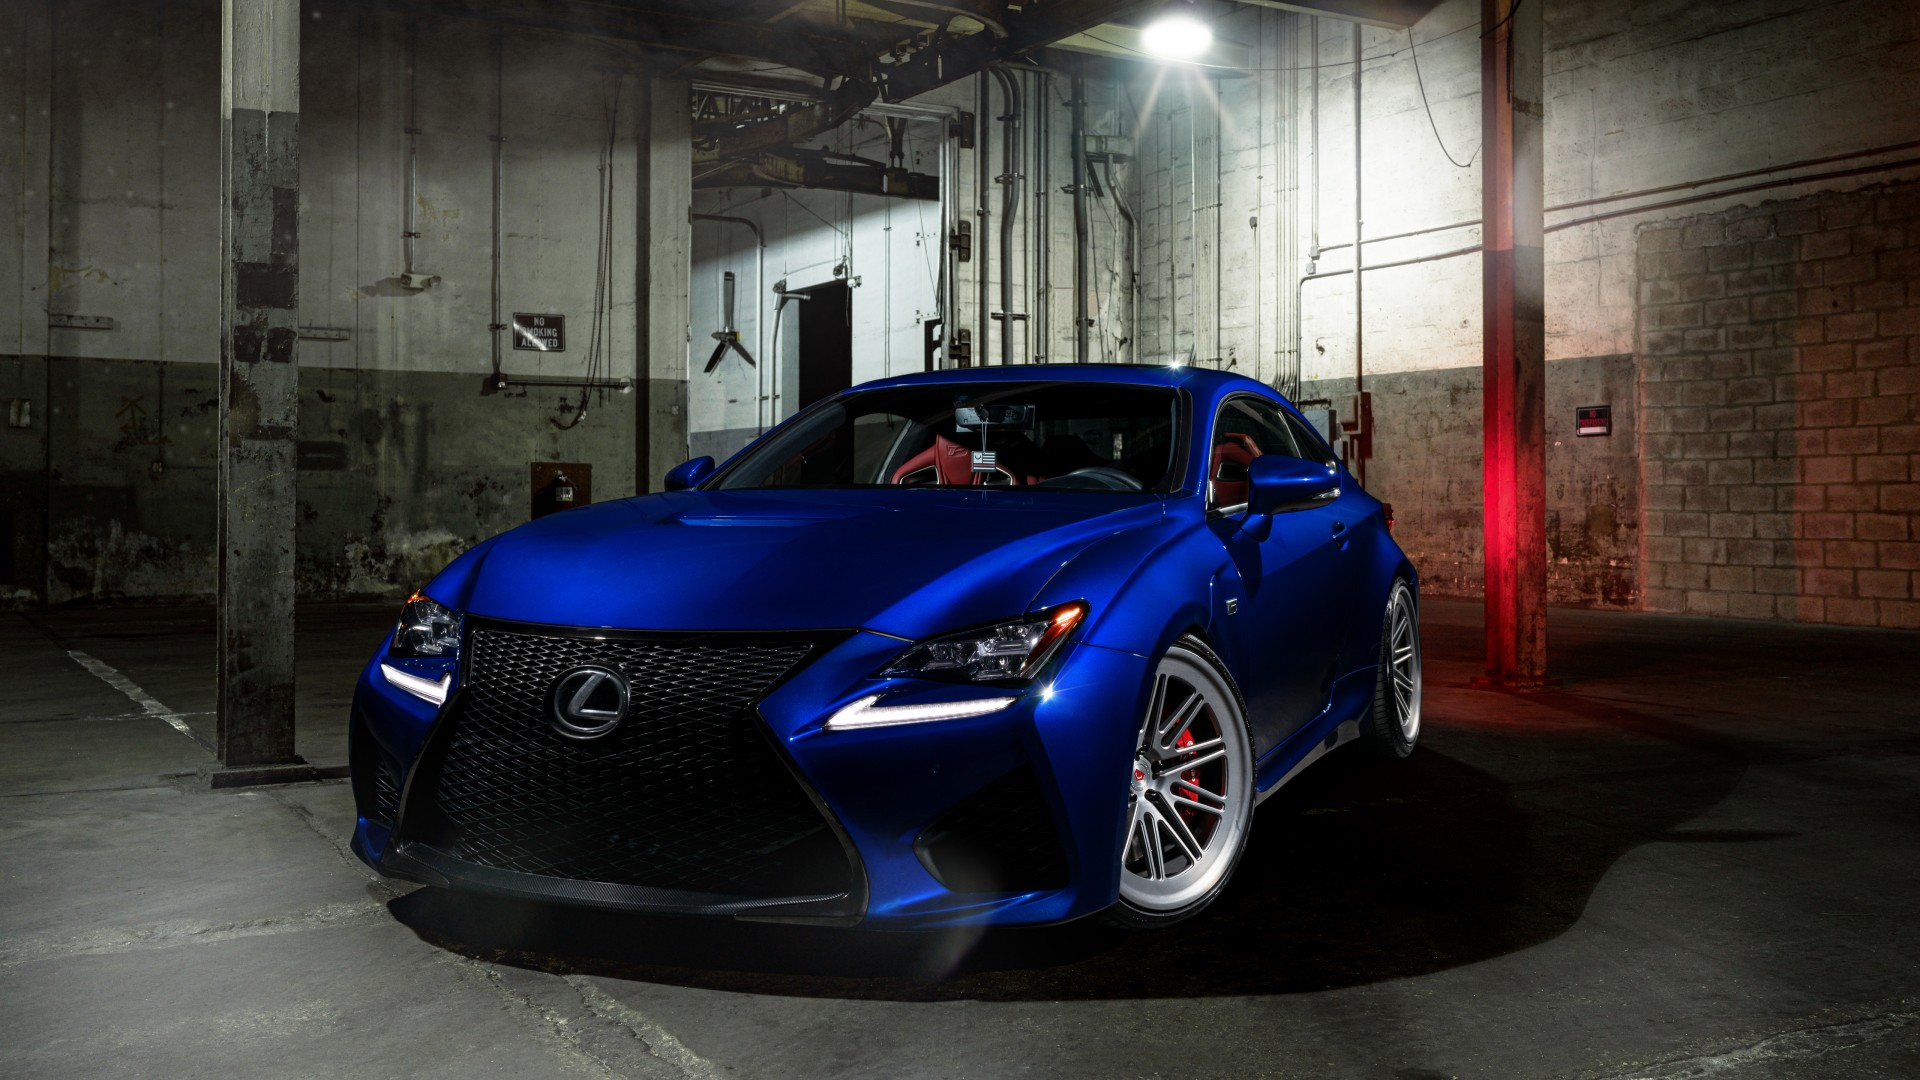 Lexus Nx Hybrid >> 2016 Vossen Blue Lexus RC F Wallpaper | HD Car Wallpapers ...